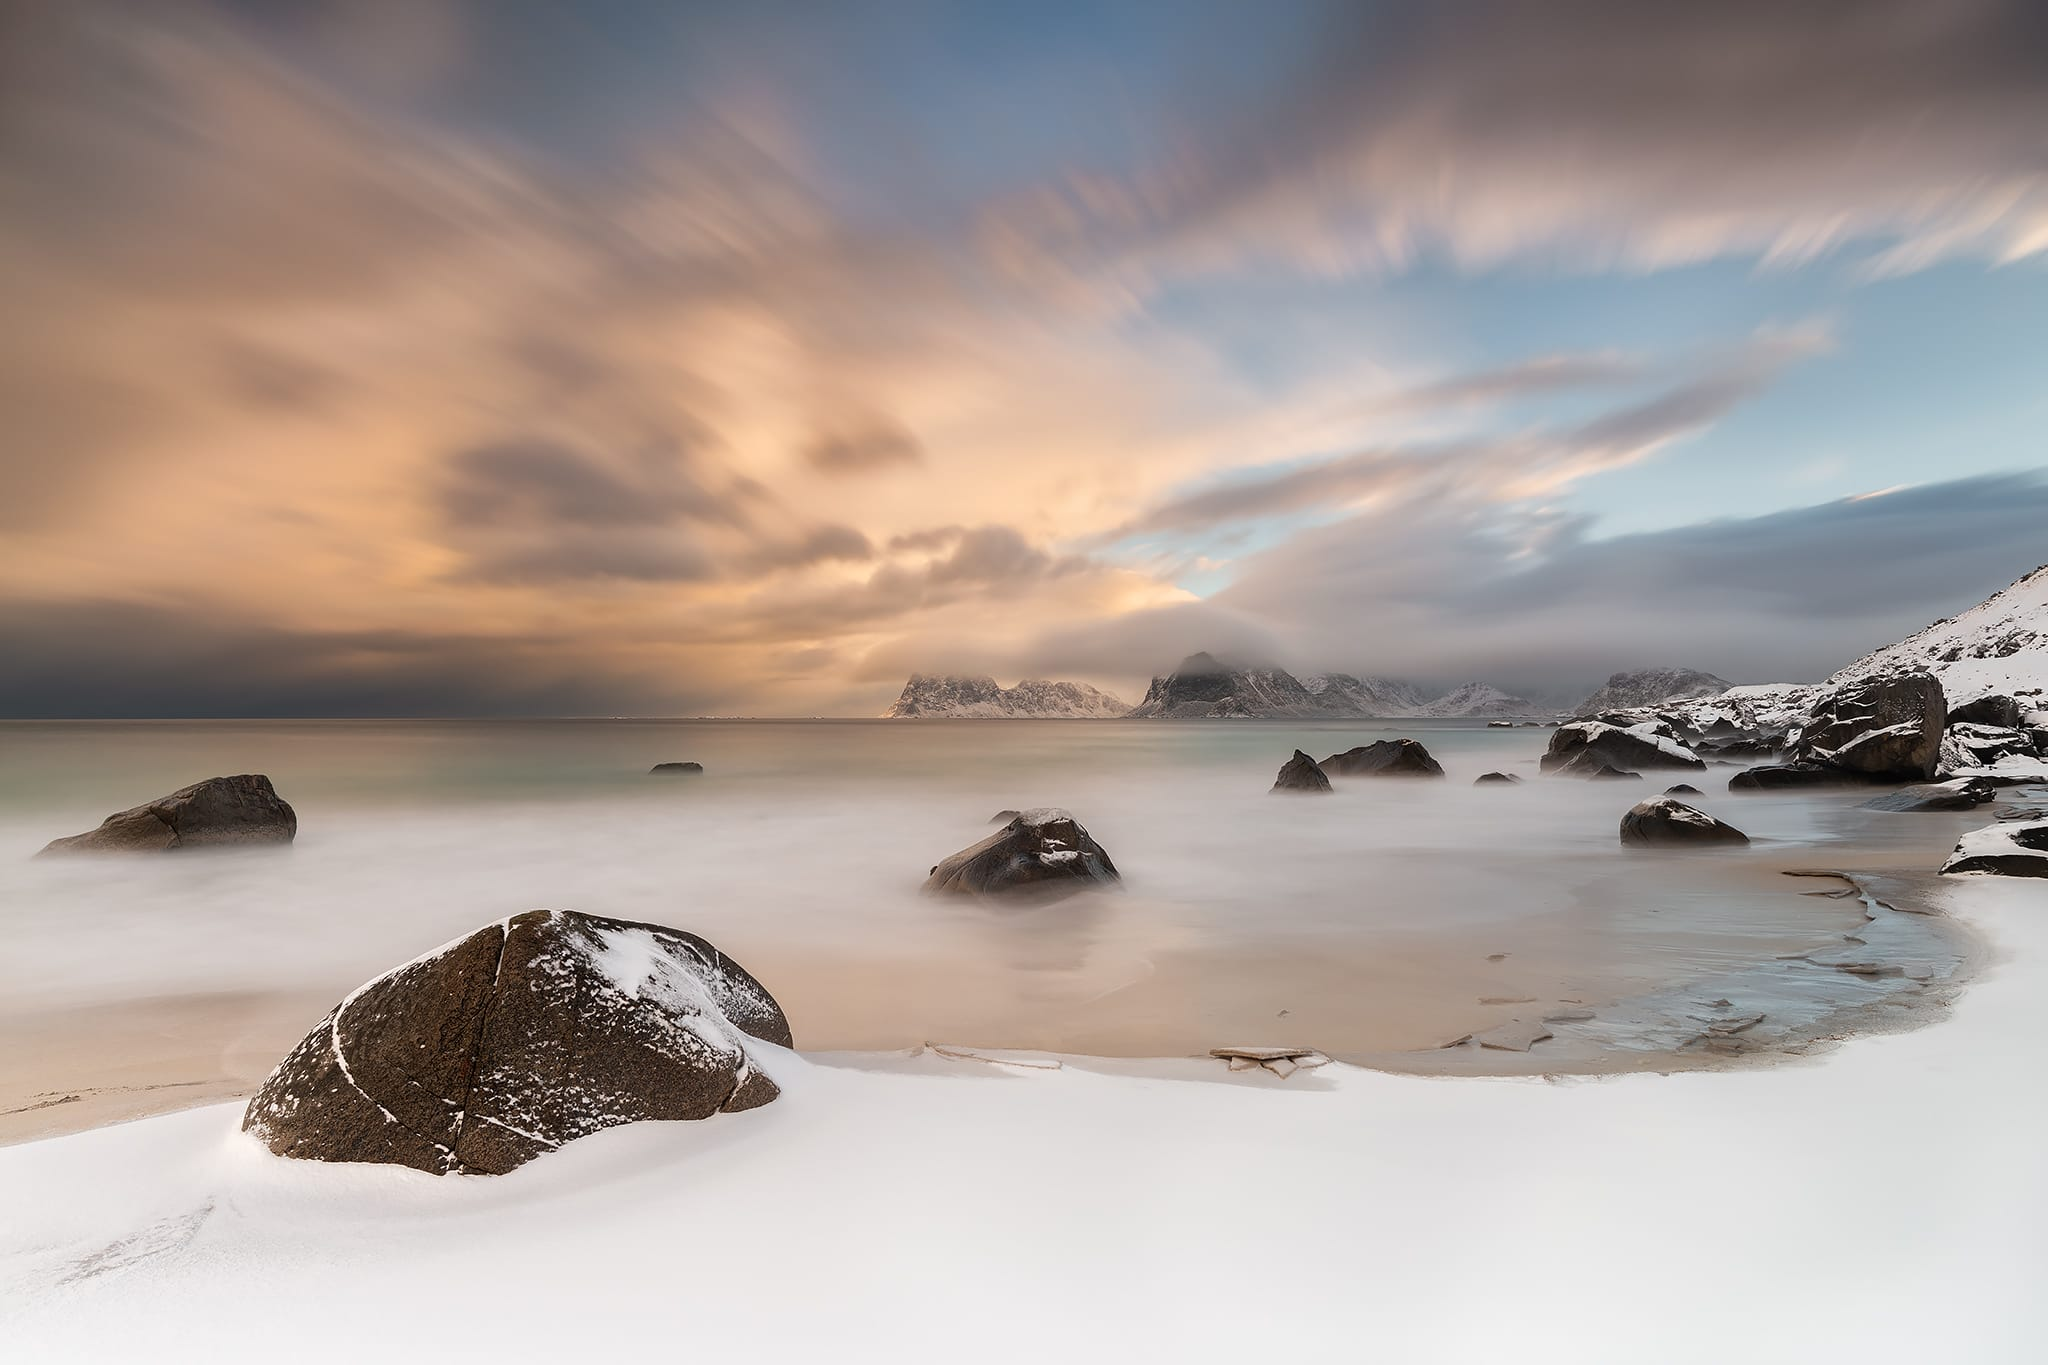 Francesco Gola Long Exposure Seascape Photography Europe Norway Lofoten Islands Warm Sunrise Arctic Sunrise